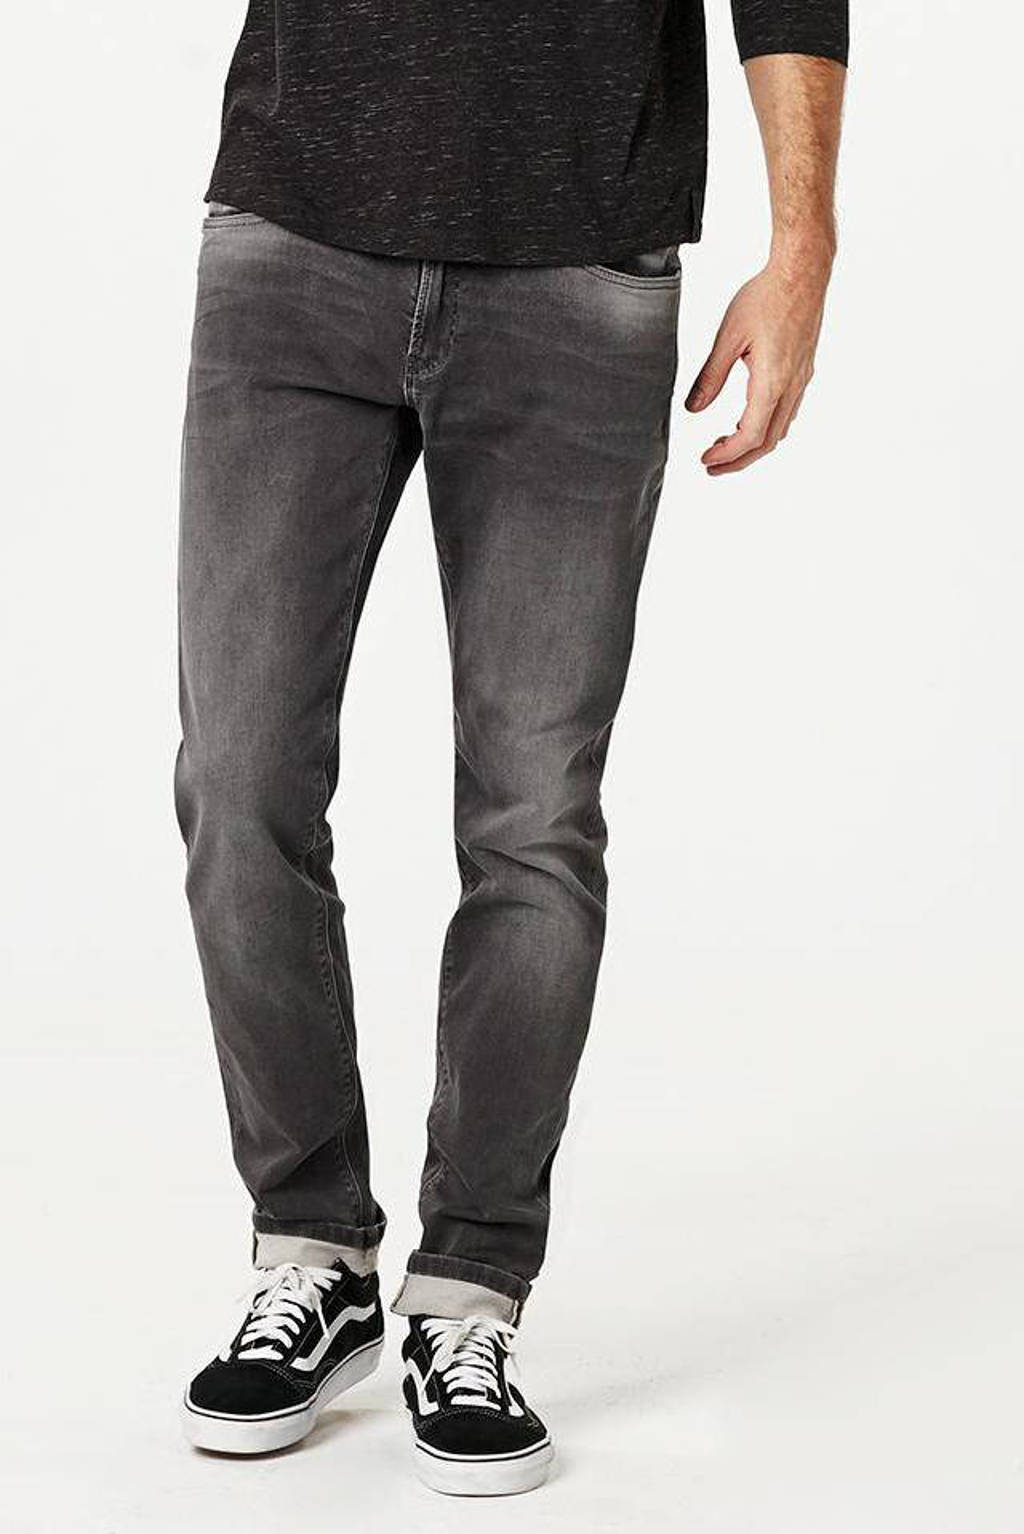 Cars slim fit jeans Ancona jog grey used, Grey used